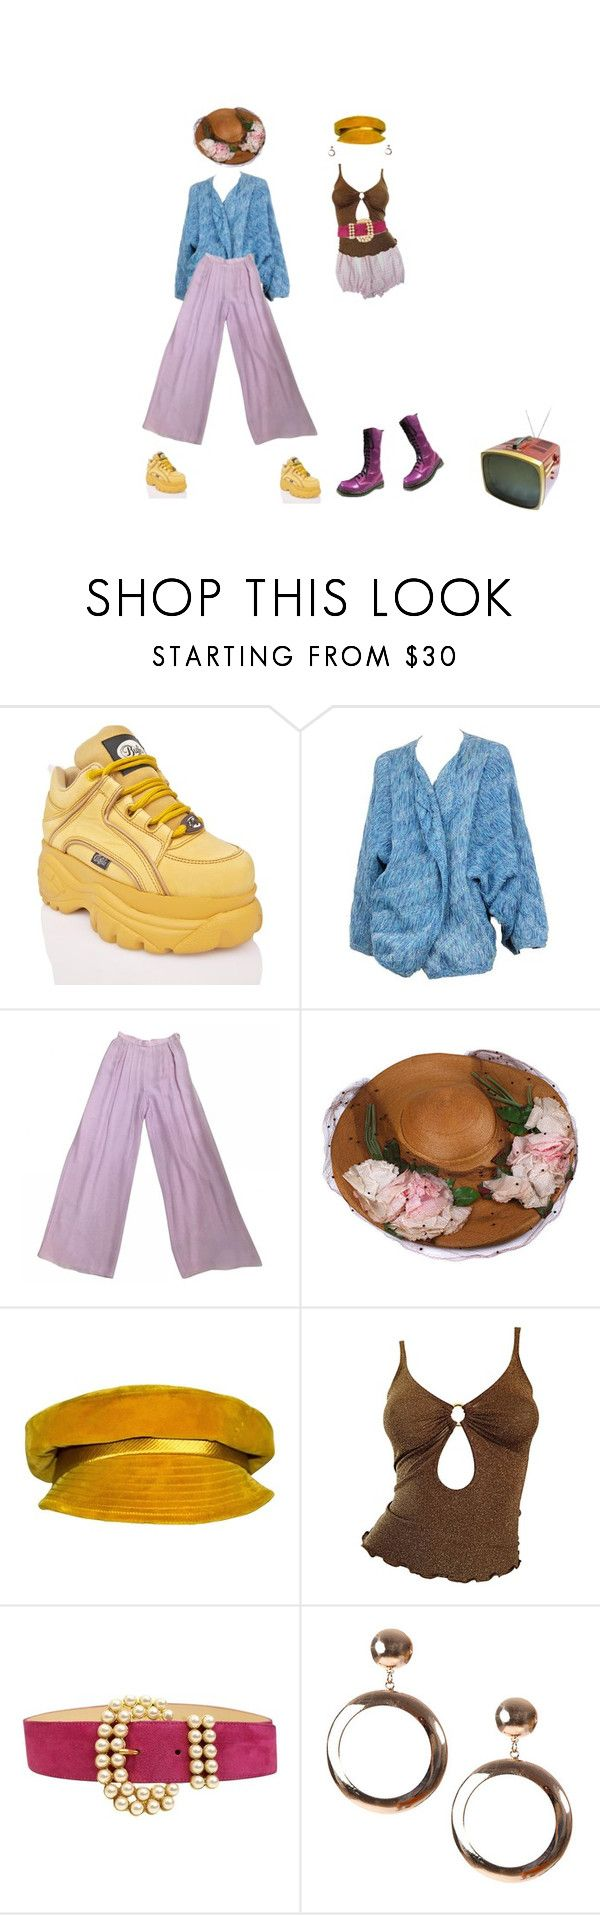 """vanish with me into the clouds"" by rojinnn ❤ liked on Polyvore featuring Buffalo, Issey Miyake, Chanel, Mr. John, Moschino, Victor and Dr. Martens"